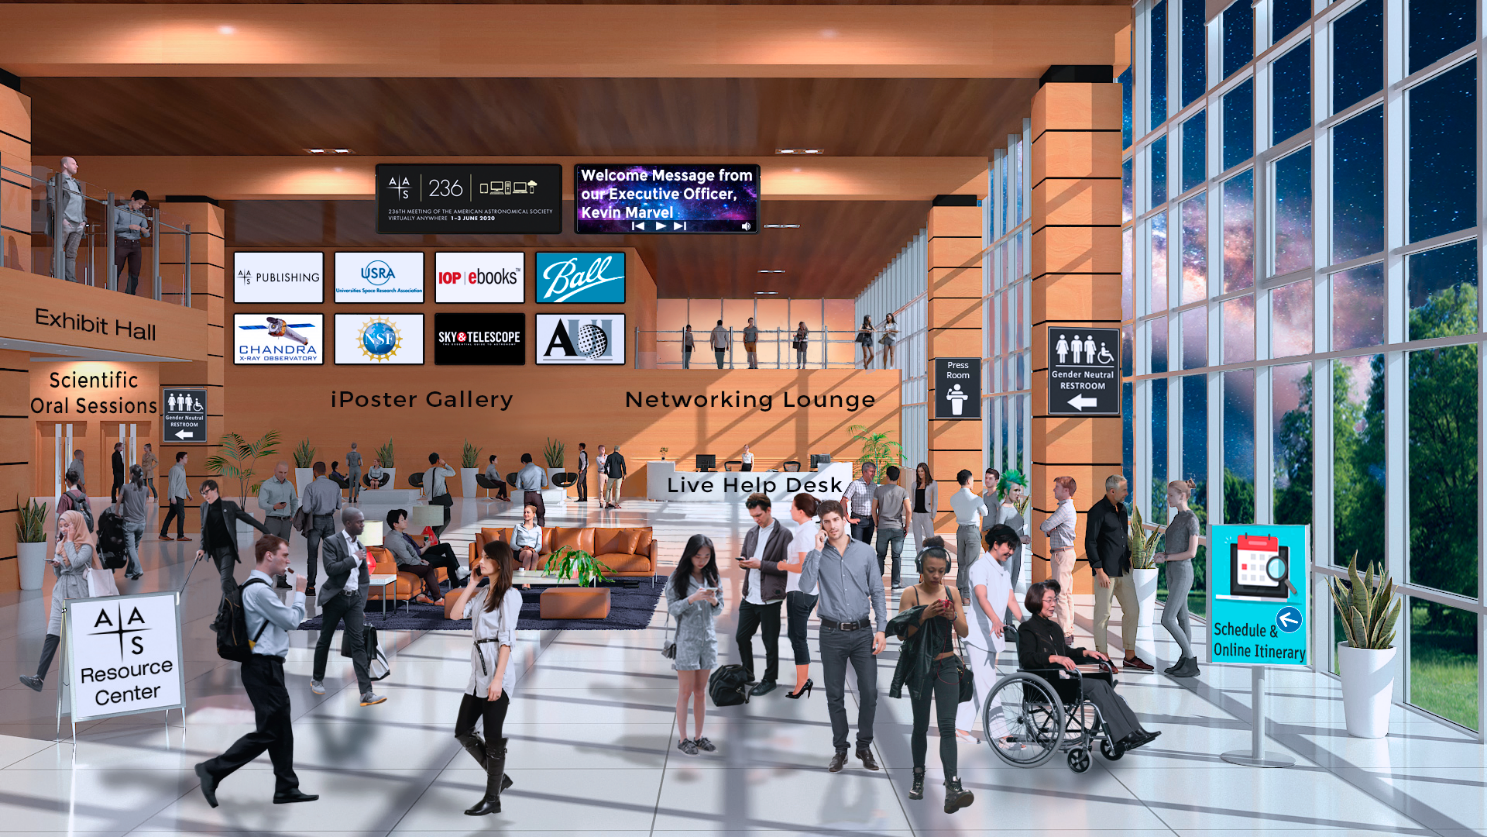 Virtual Meeting Lobby